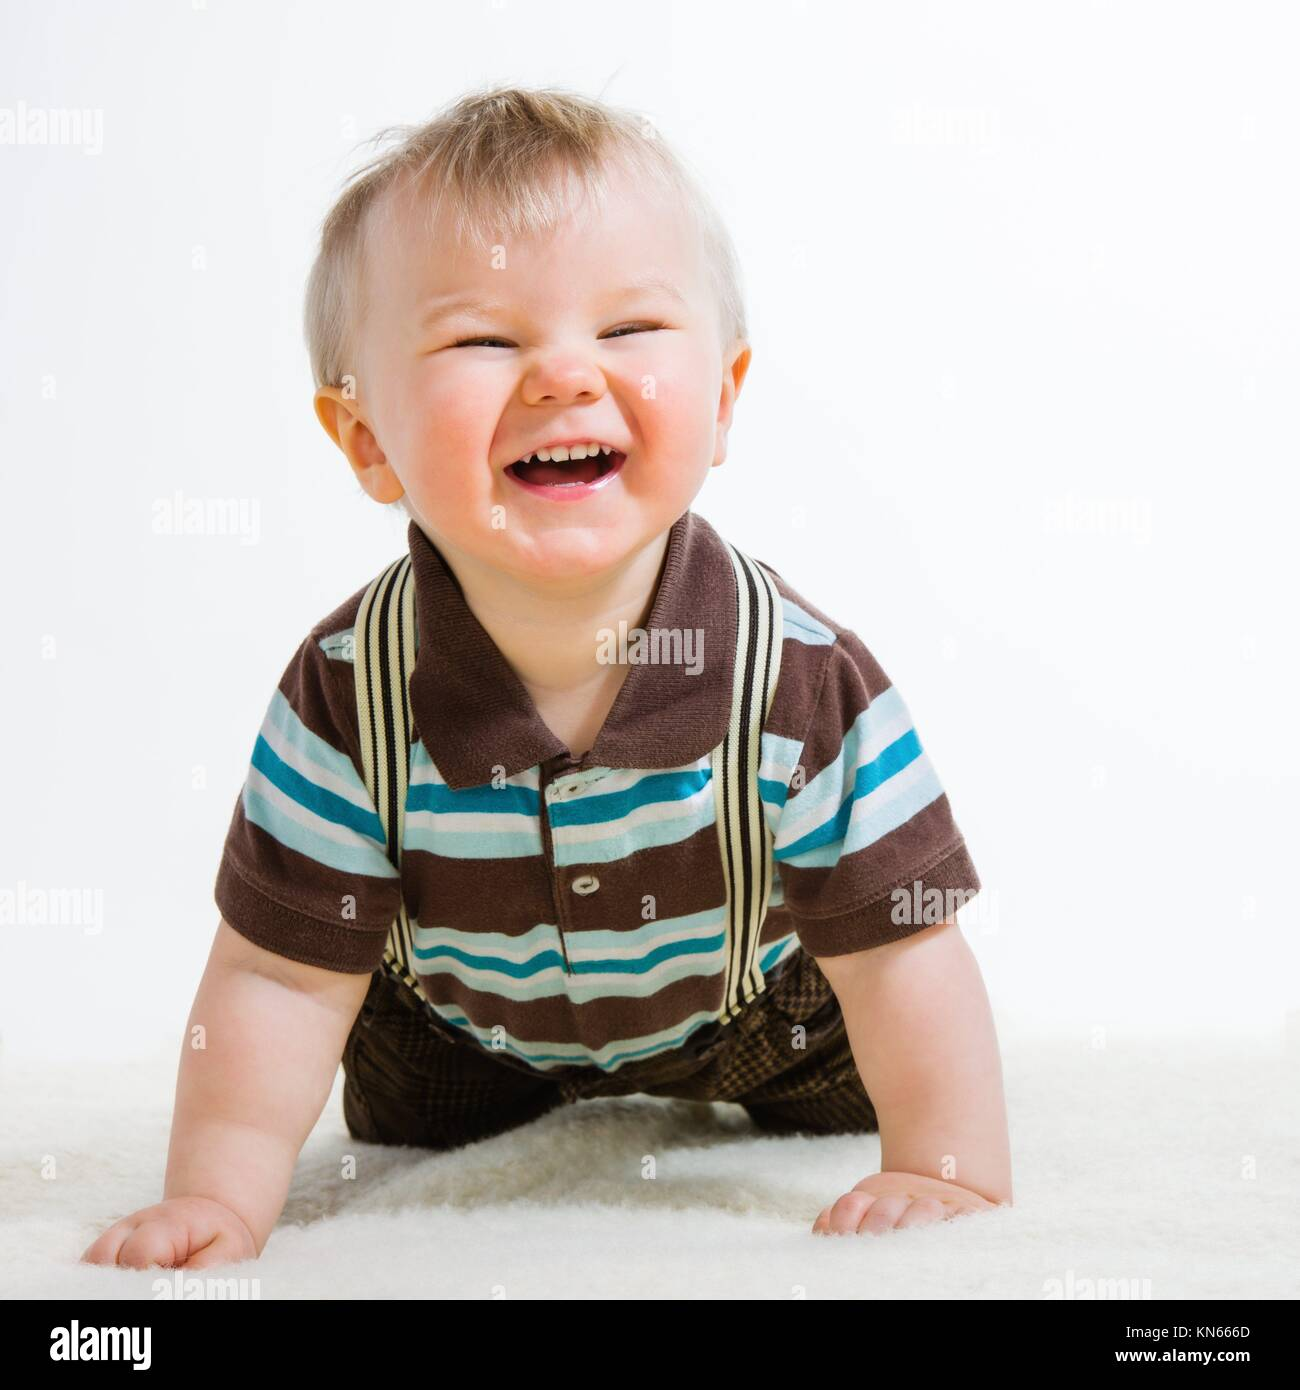 Baby 18 Monate 18 Month Baby Laughing Stockfotos And 18 Month Baby Laughing